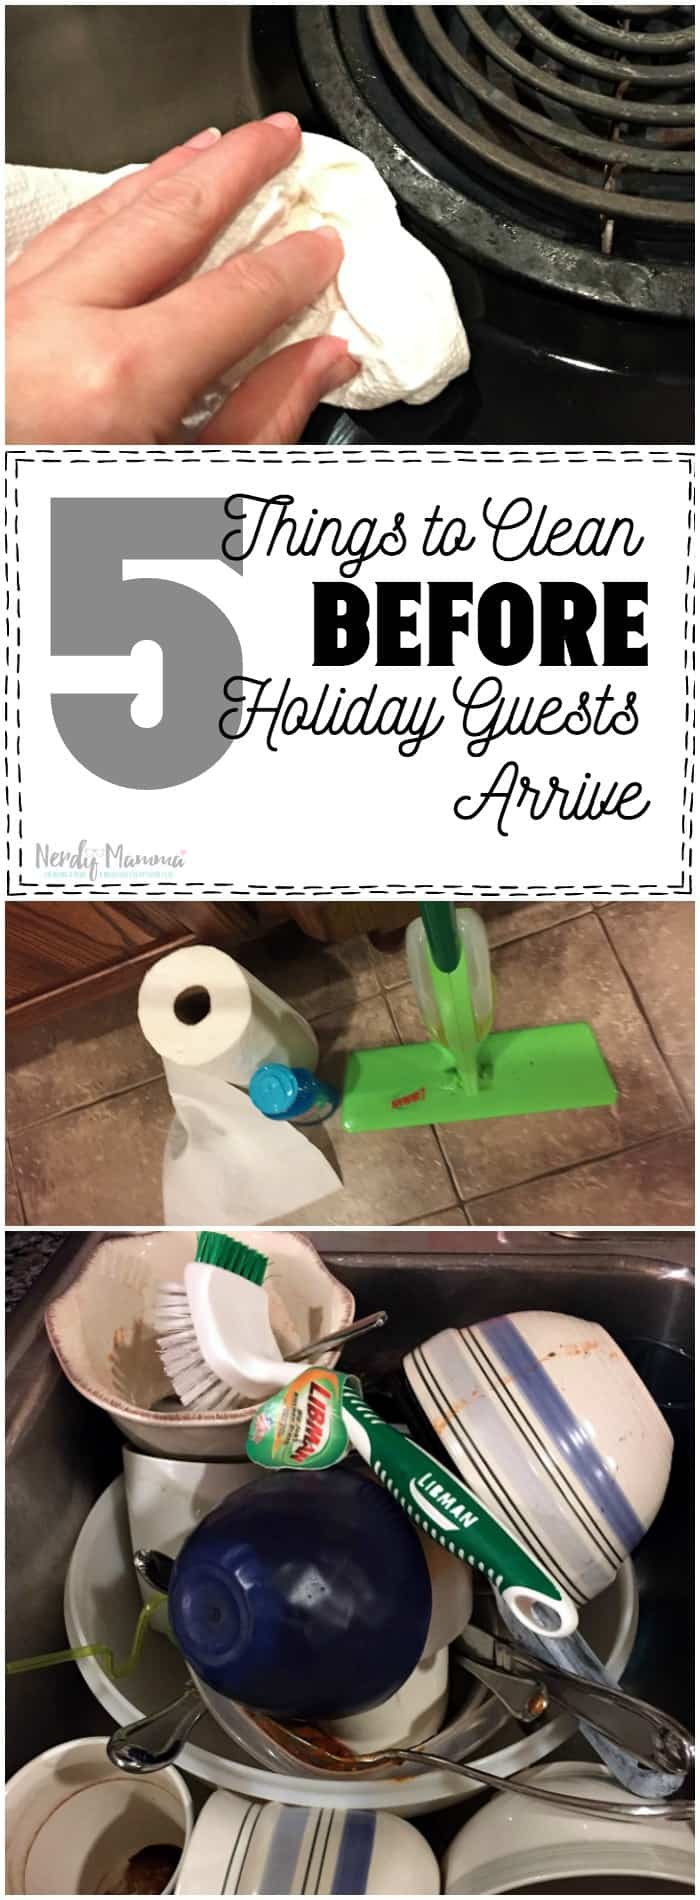 i-love-these-5-cleaning-hacks-for-holidays-so-simple-lol